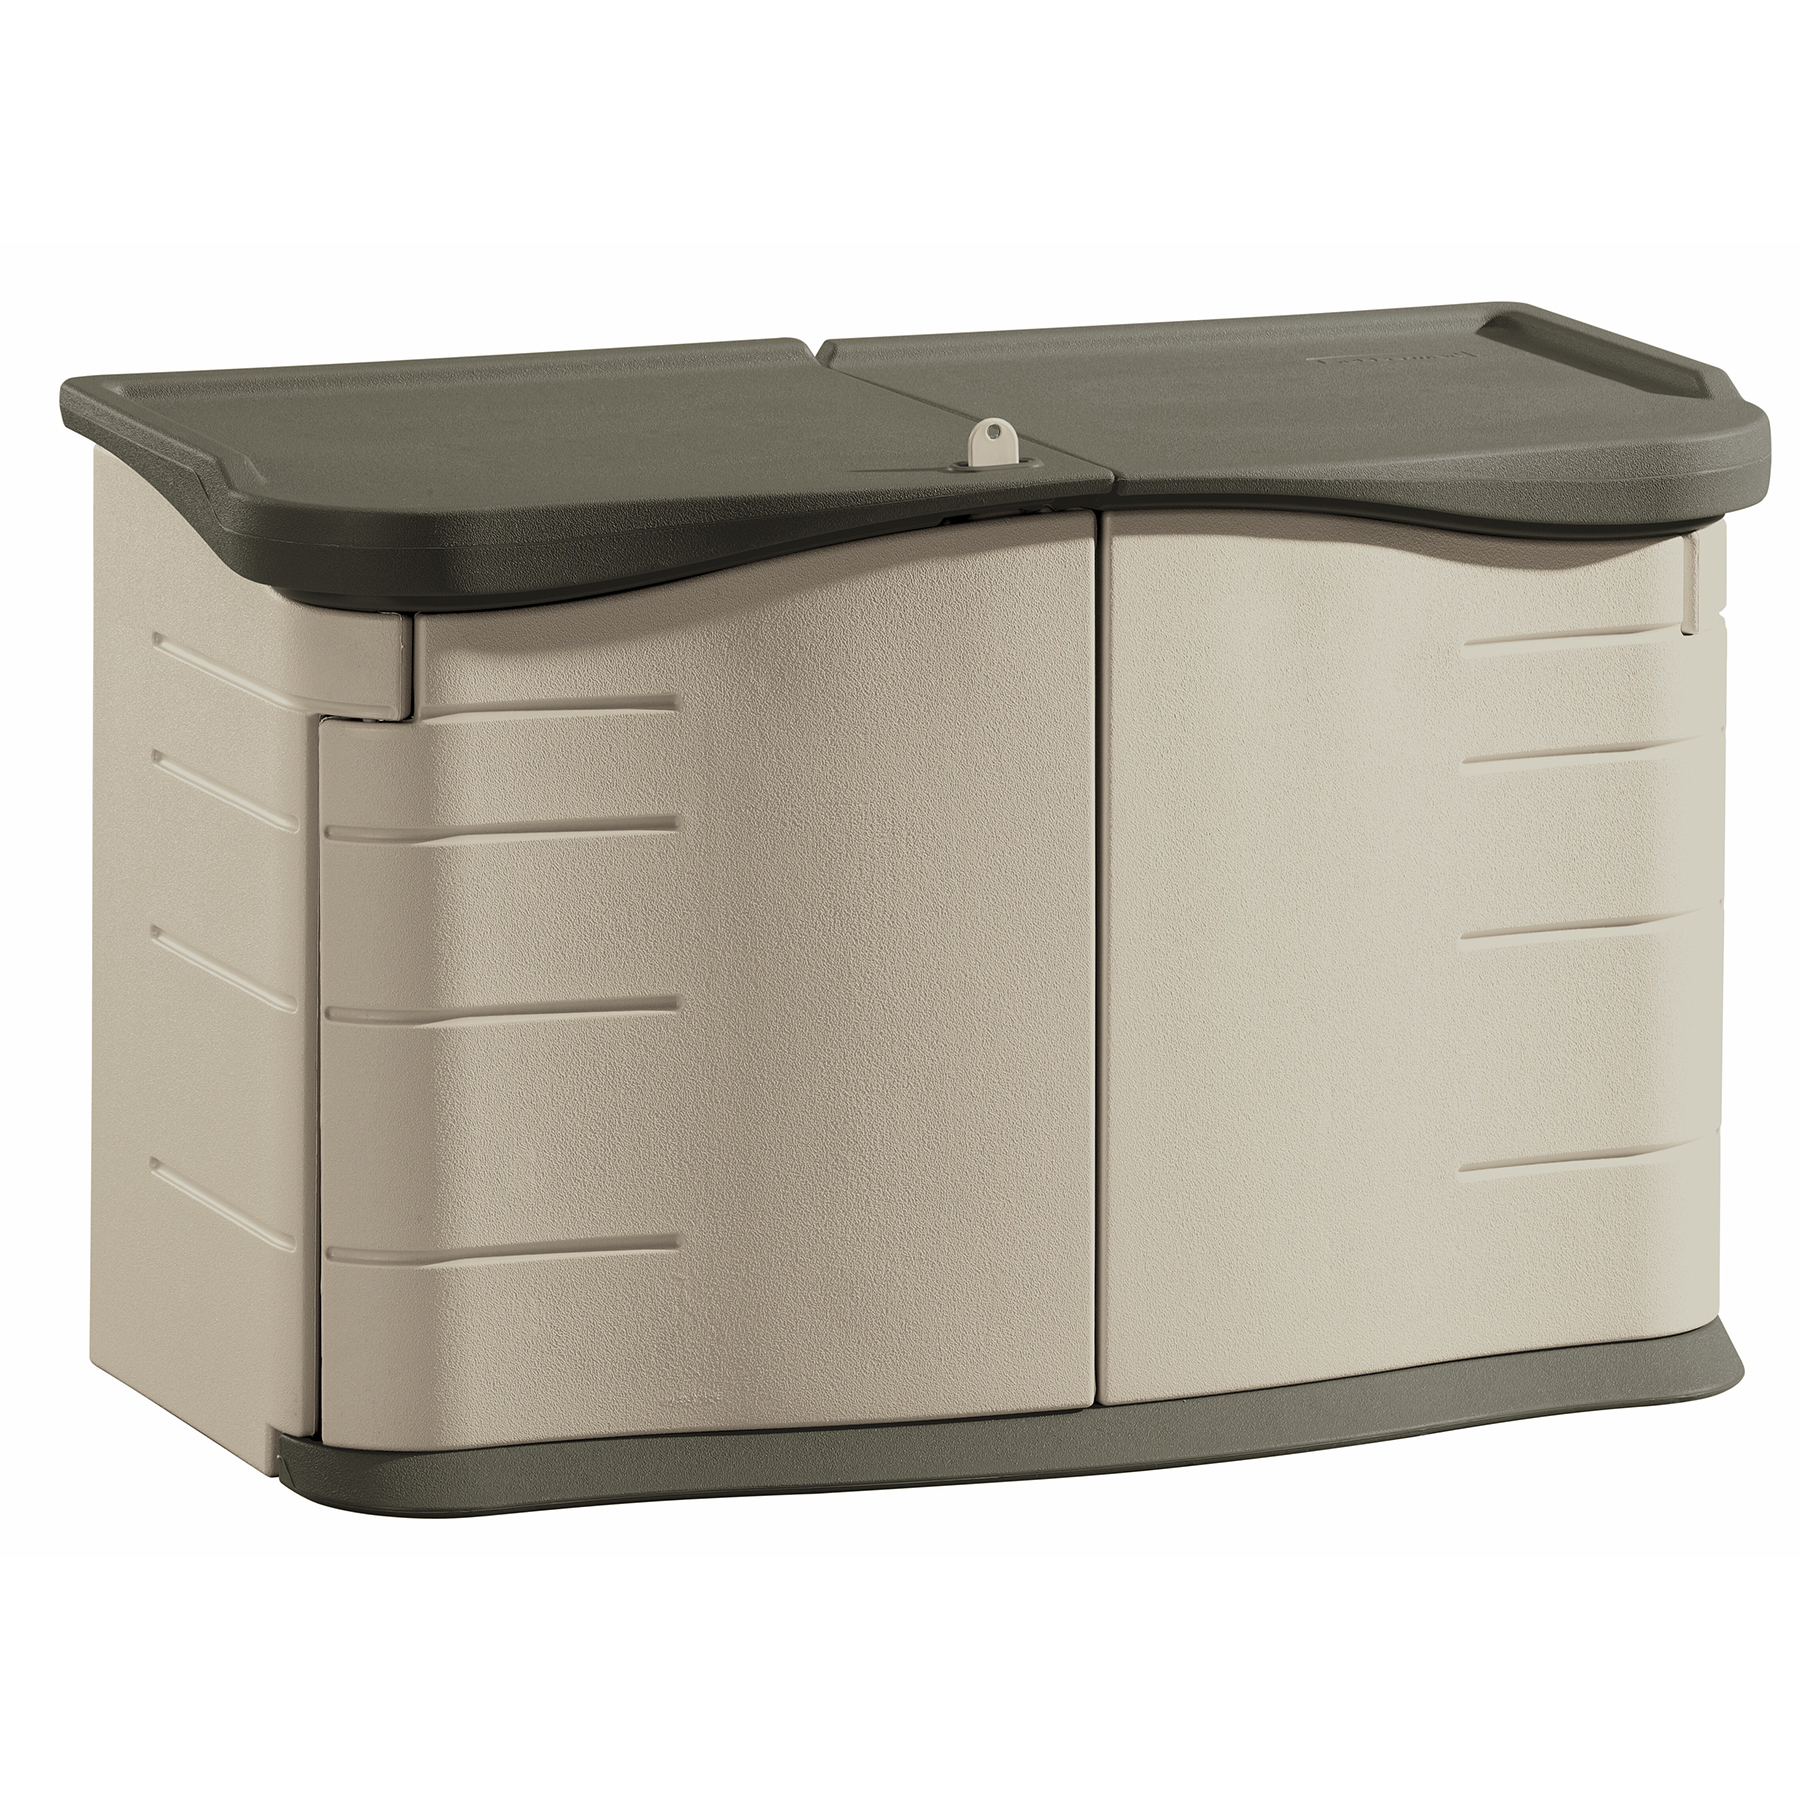 "Rubbermaid FG375301OLVSS 3' 11"" W X 1' 9"" D X 2' 5"" H Split Lid Shed"